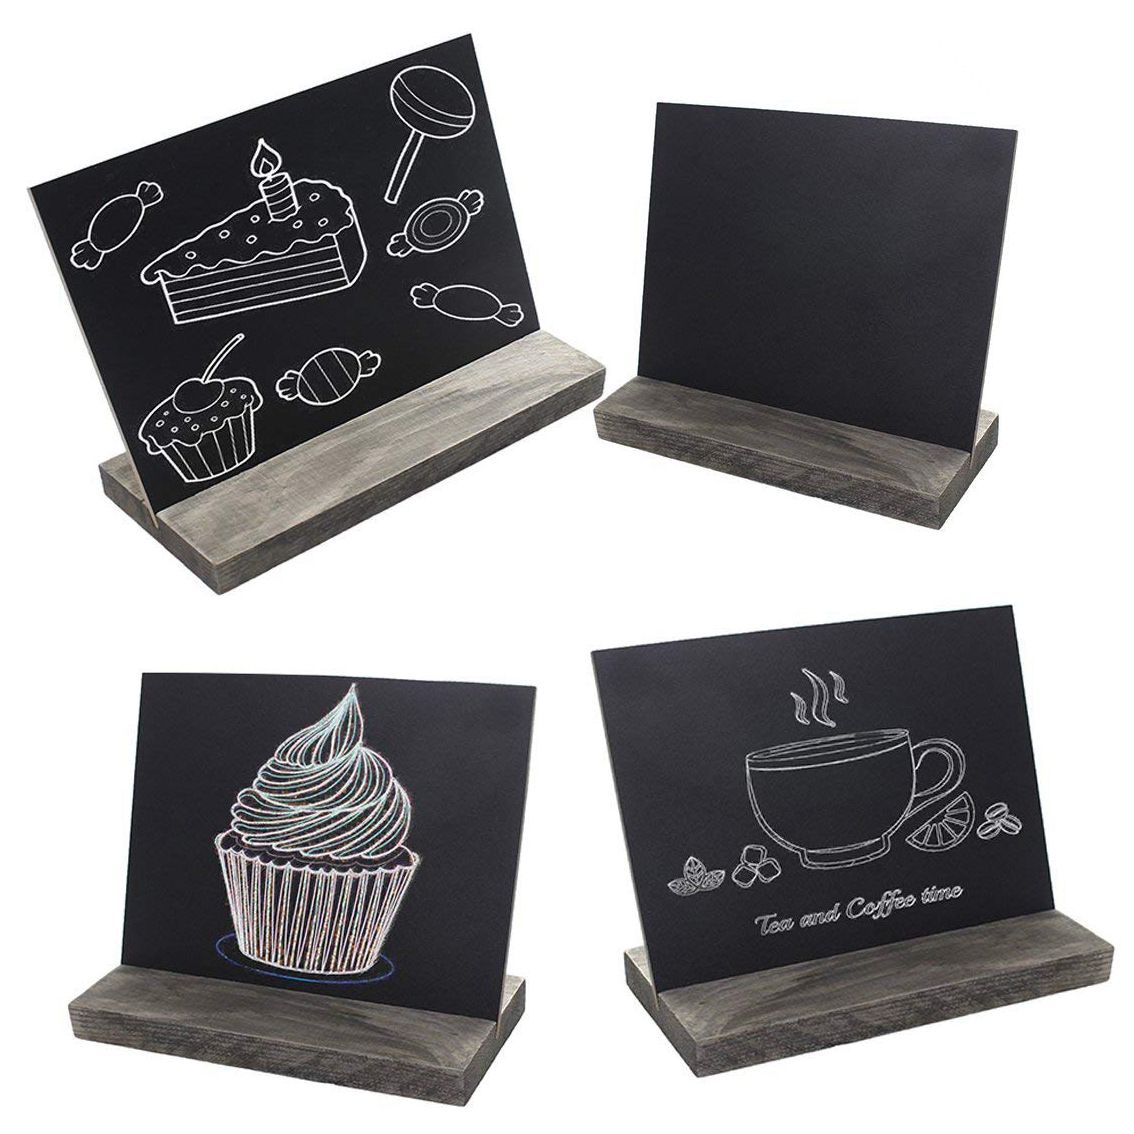 Phenomenal Us 8 21 41 Off 15 3X12 7X4 6Cm Mini Tabletop Chalkboard Signs With Rustic Style Wood Base Stands Set Of 4 Include 3X Chalks On Aliexpress Com Download Free Architecture Designs Scobabritishbridgeorg